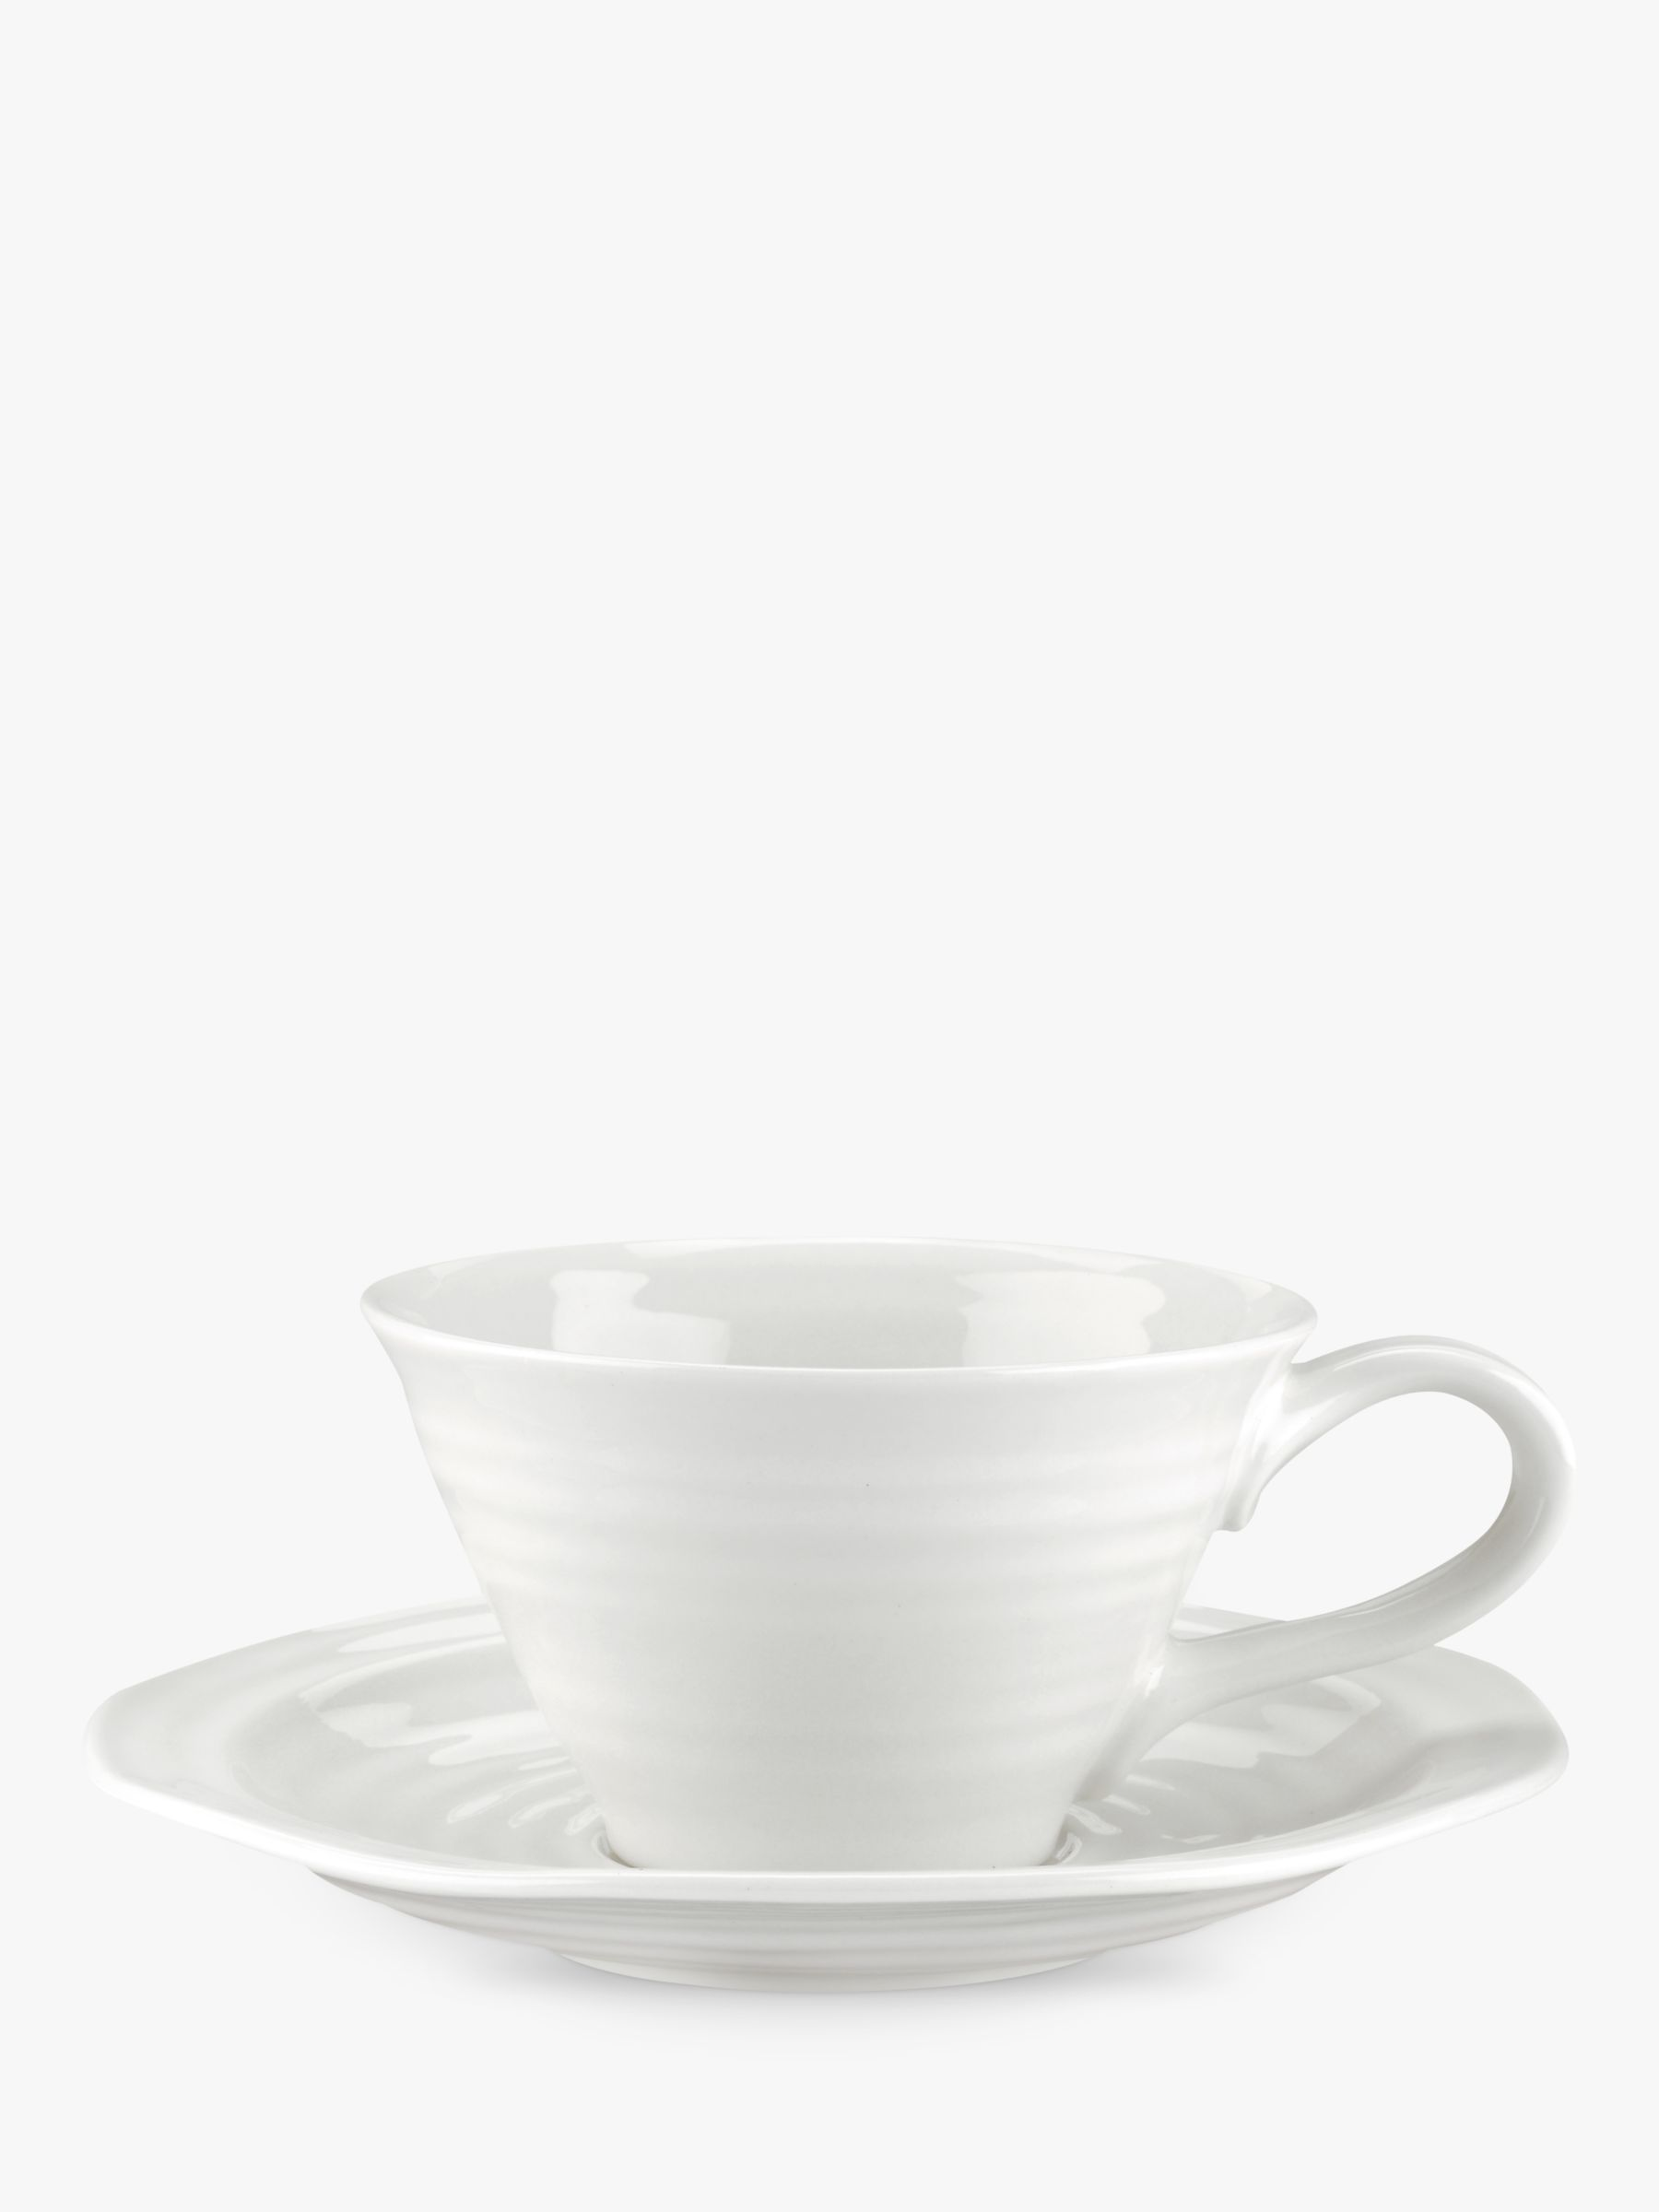 Sophie Conran for Portmeirion Sophie Conran for Portmeirion Tea Cup and Saucer, White